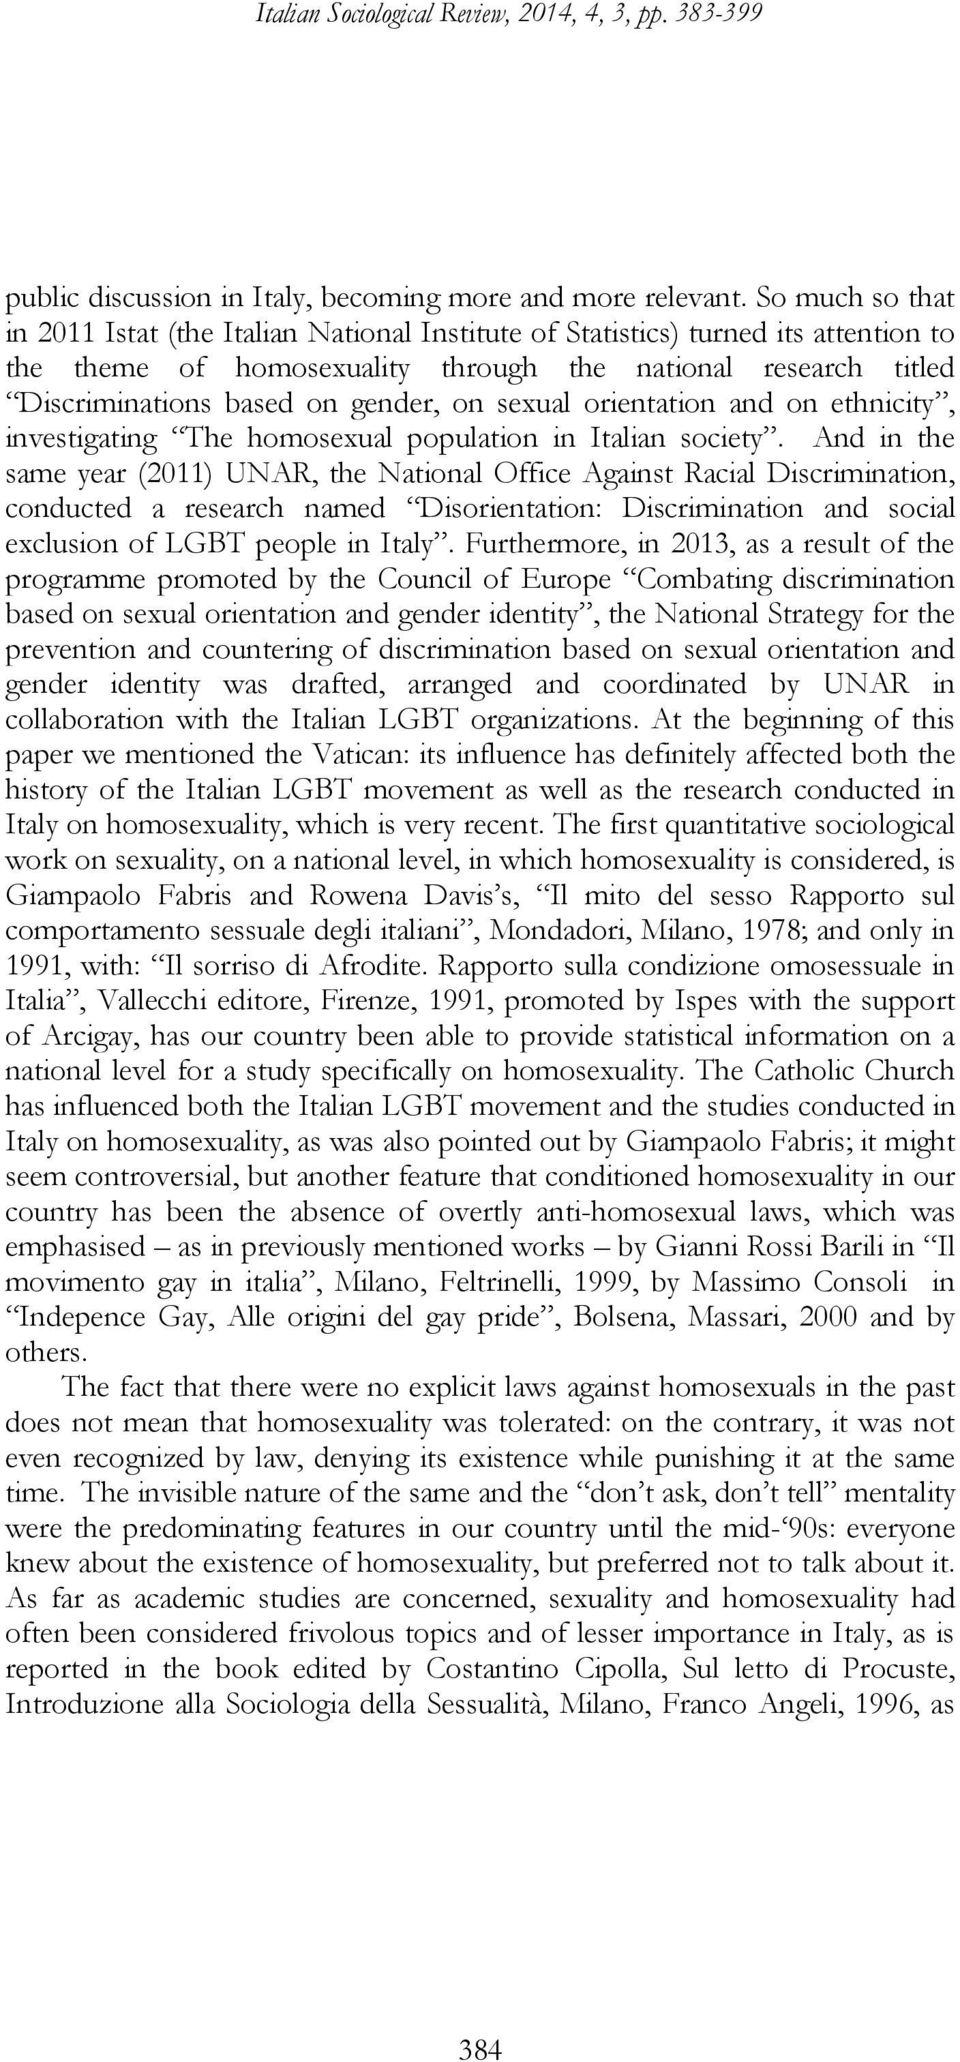 on sexual orientation and on ethnicity, investigating The homosexual population in Italian society.